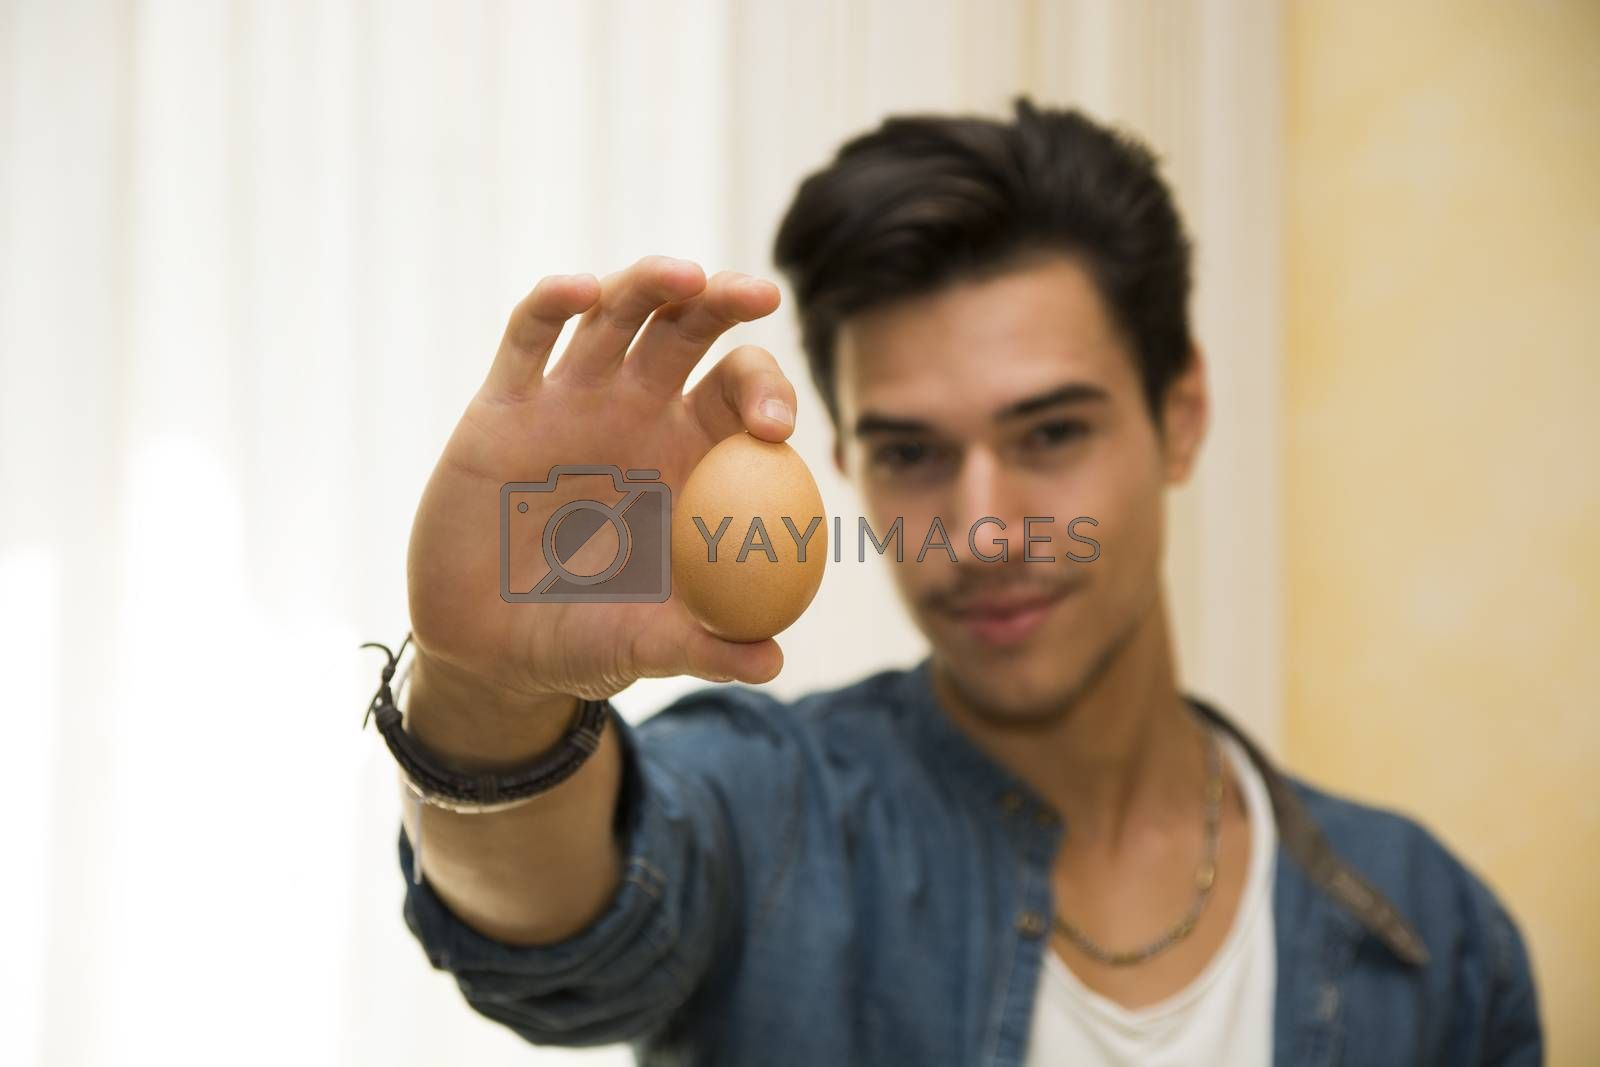 Smiling young man holding an egg in his hand, showing it to the camera